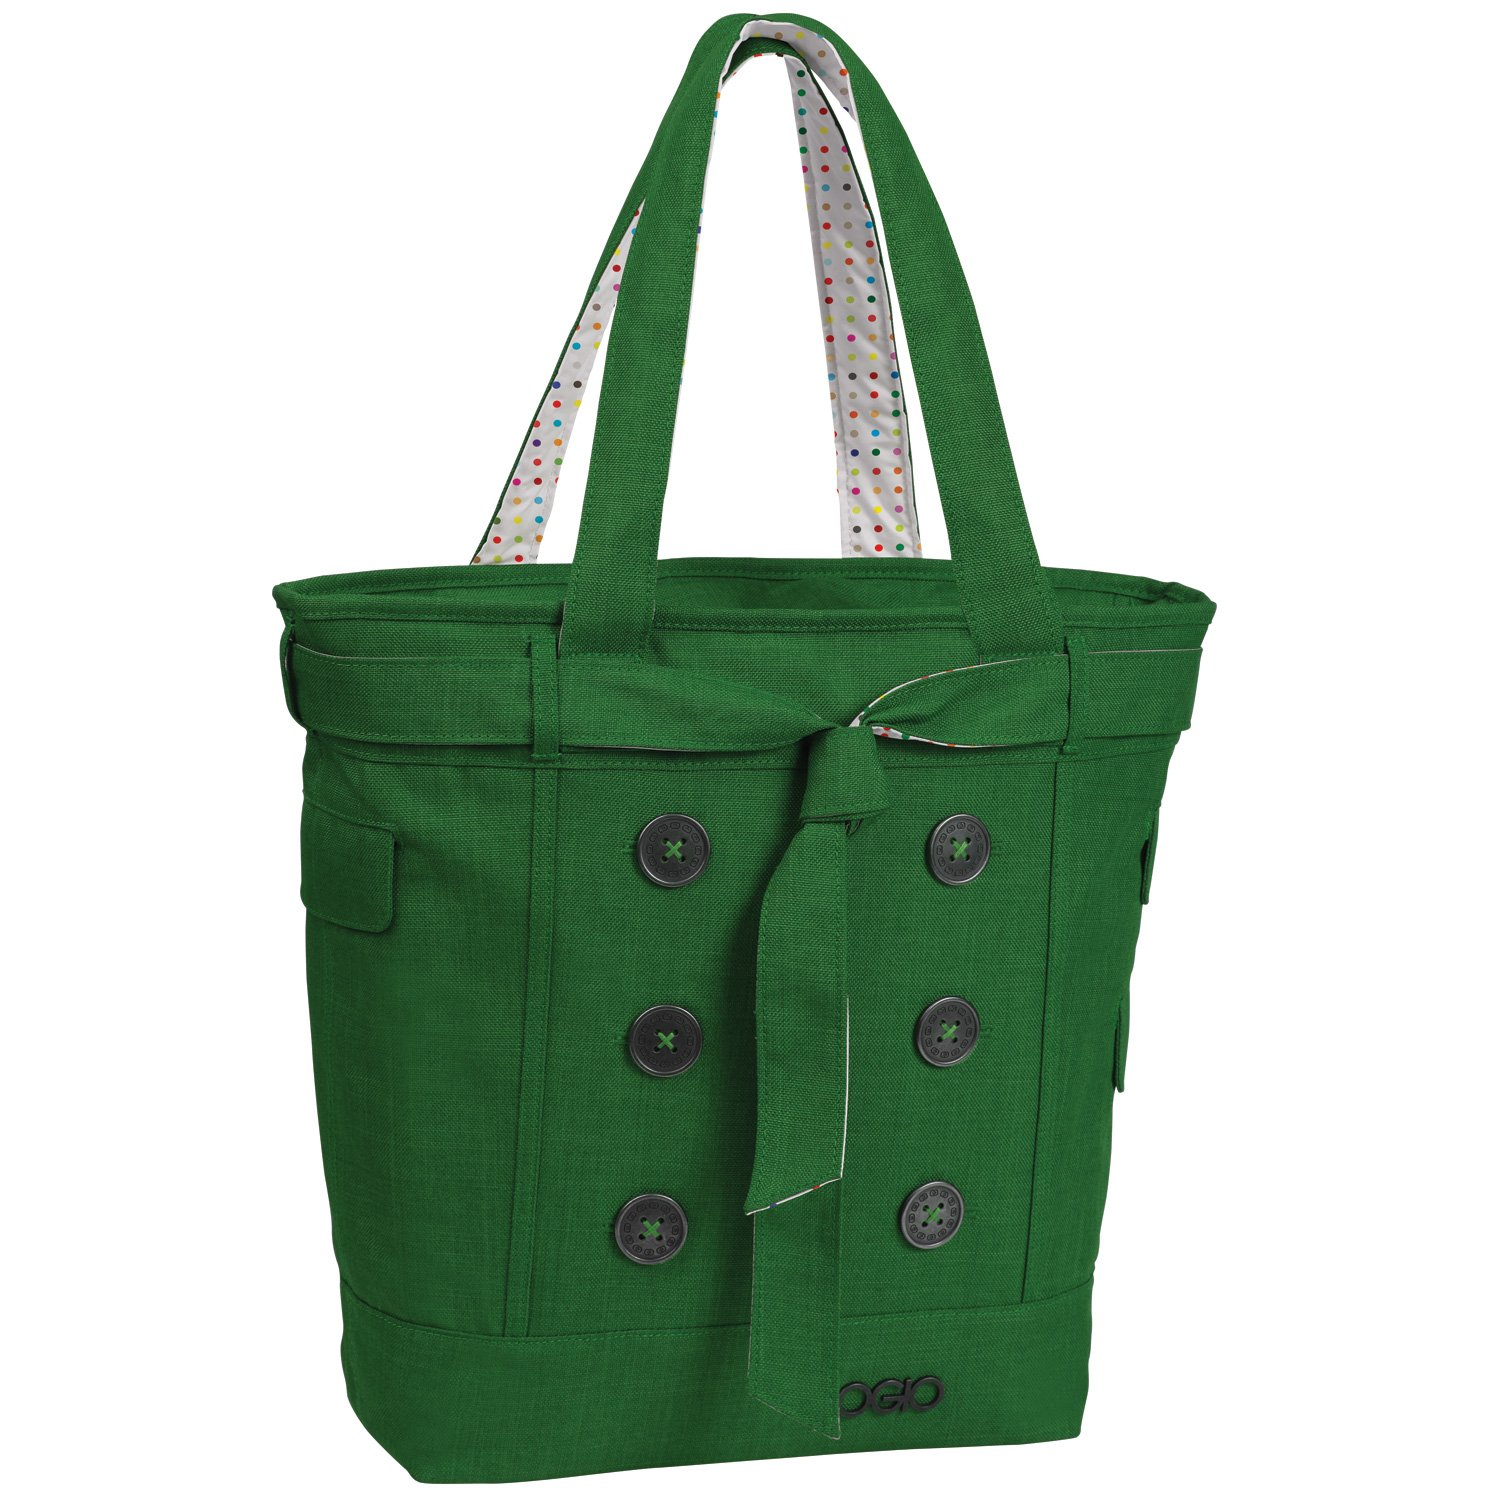 OGIO Hamptons Tote, Large, Emerald by OGIO